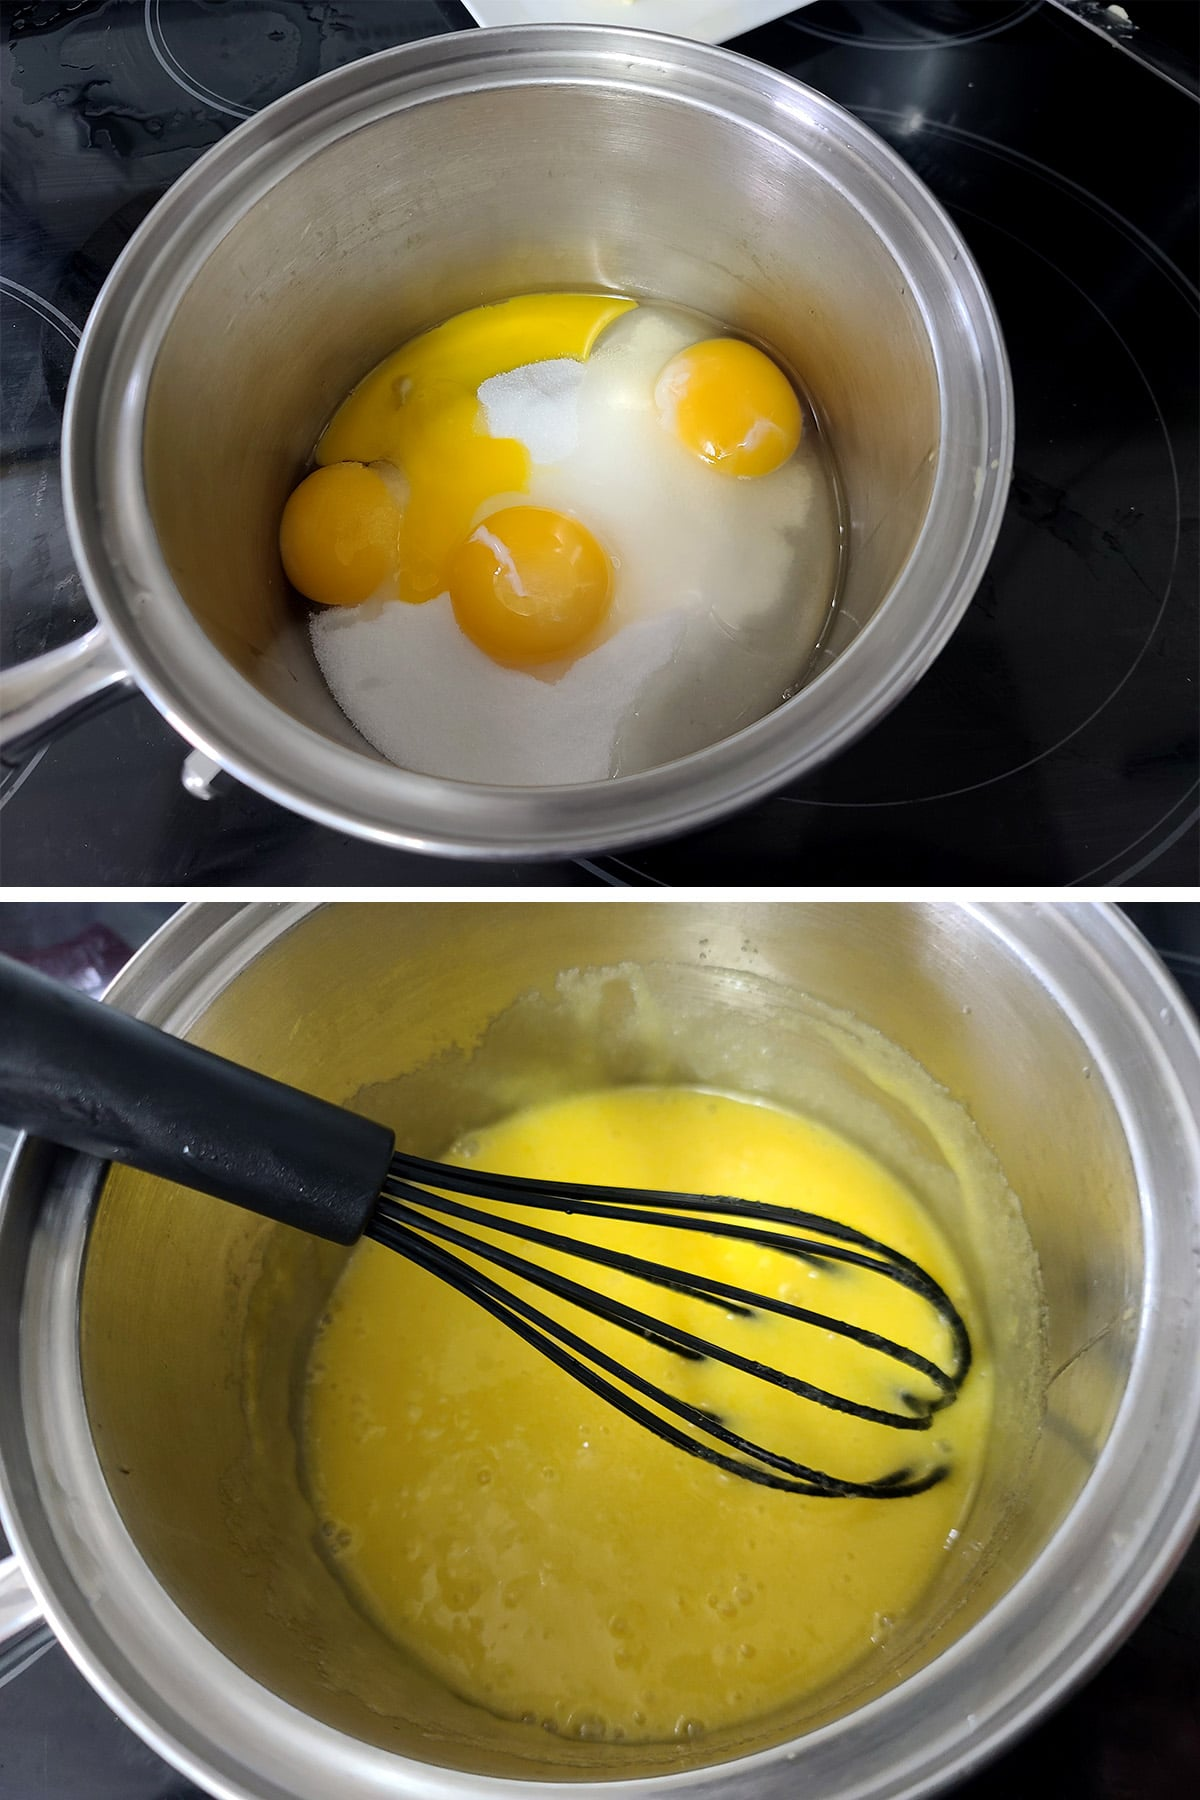 Eggs and sugar being whisked together in a pot.